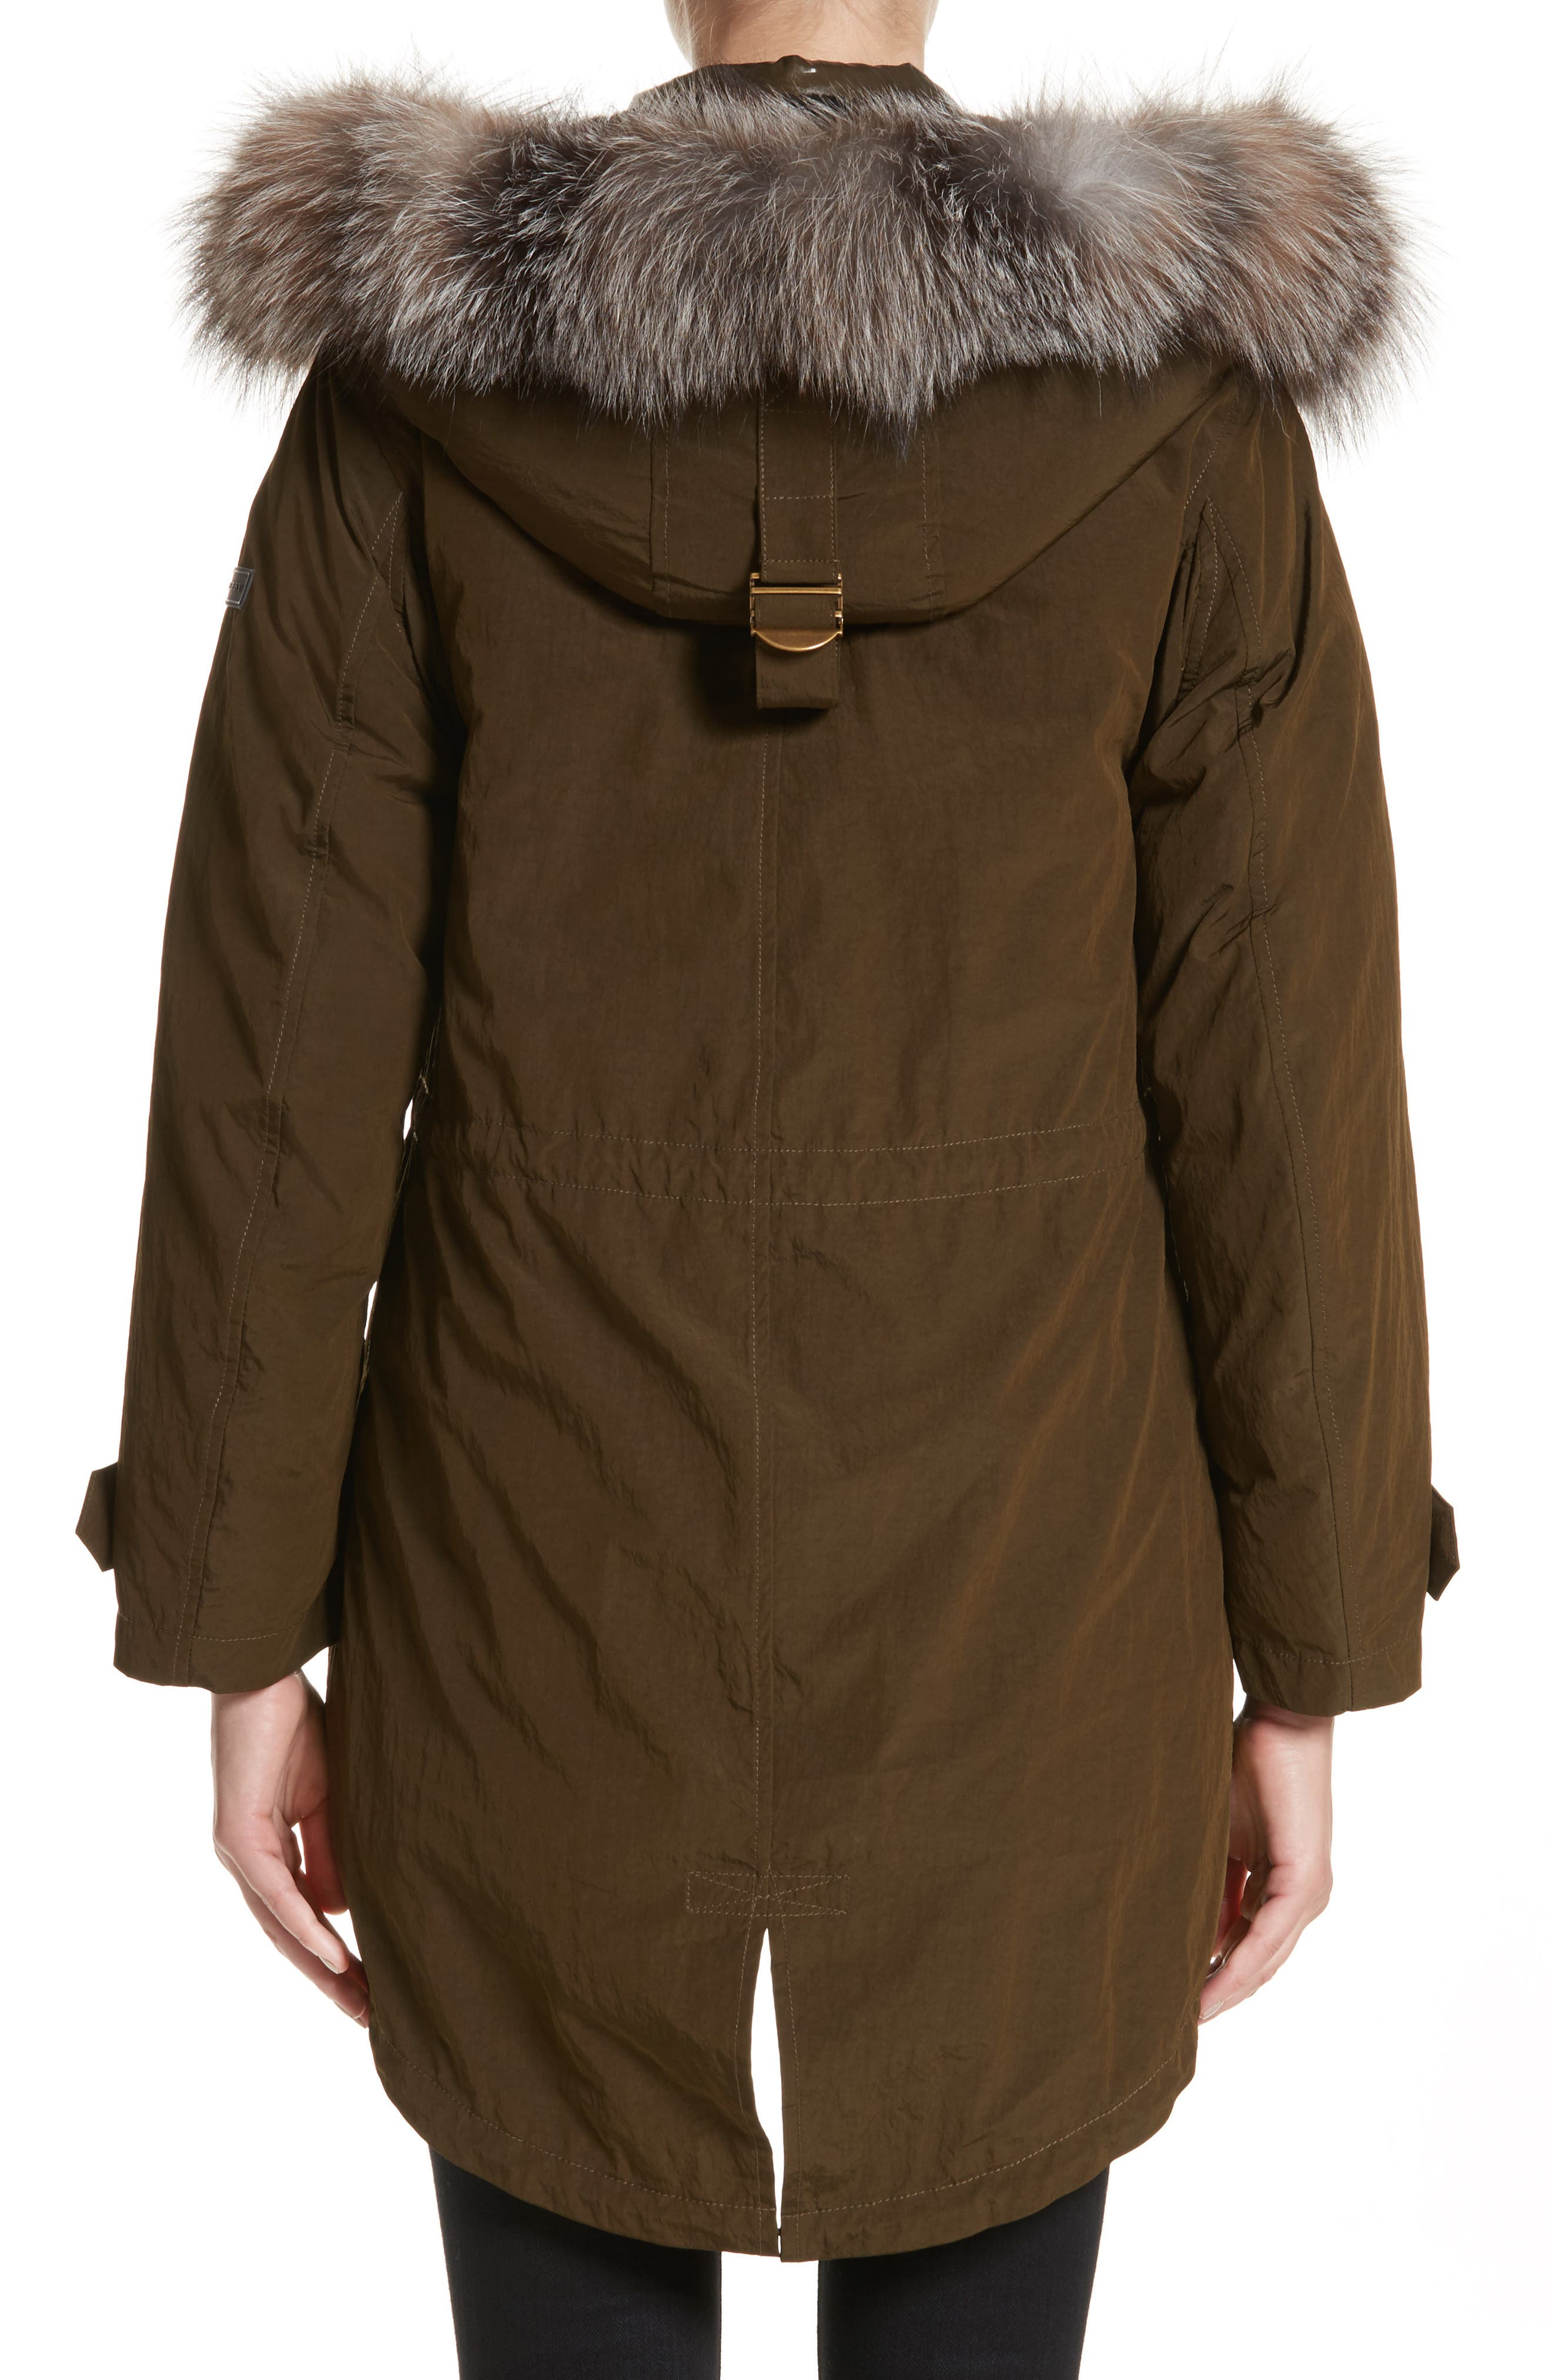 Ramsford 3-in-1 Hooded Parka with Genuine Fox Fur & Genuine Shearling Trim,                             Alternate thumbnail 3, color,                             Dark Olive